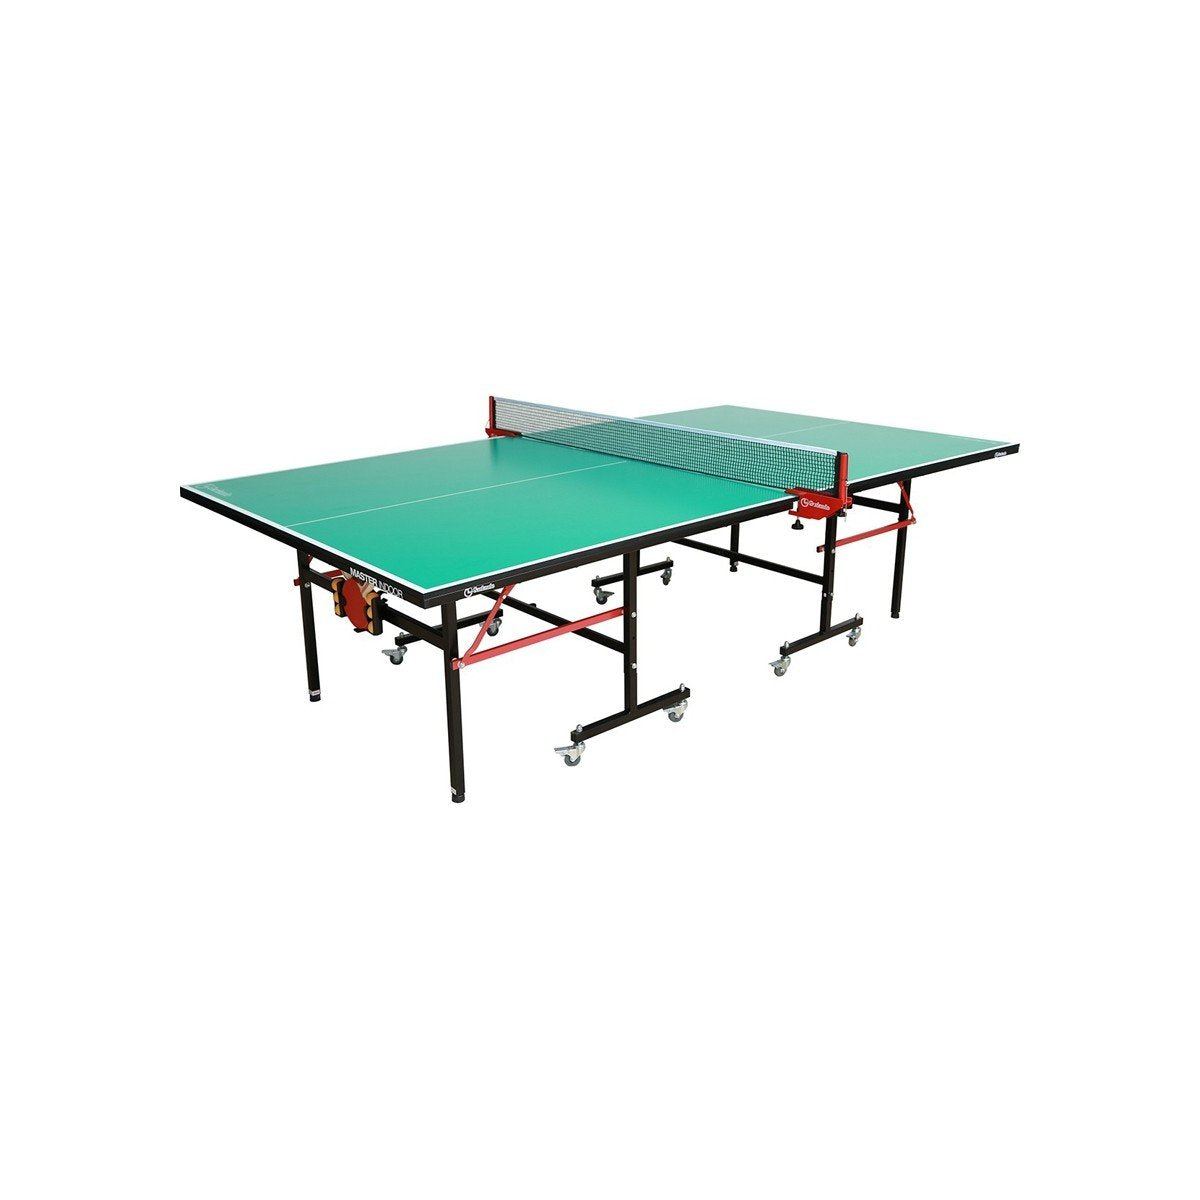 Garlando Master Indoor Table Tennis Table - Gaming Blaze